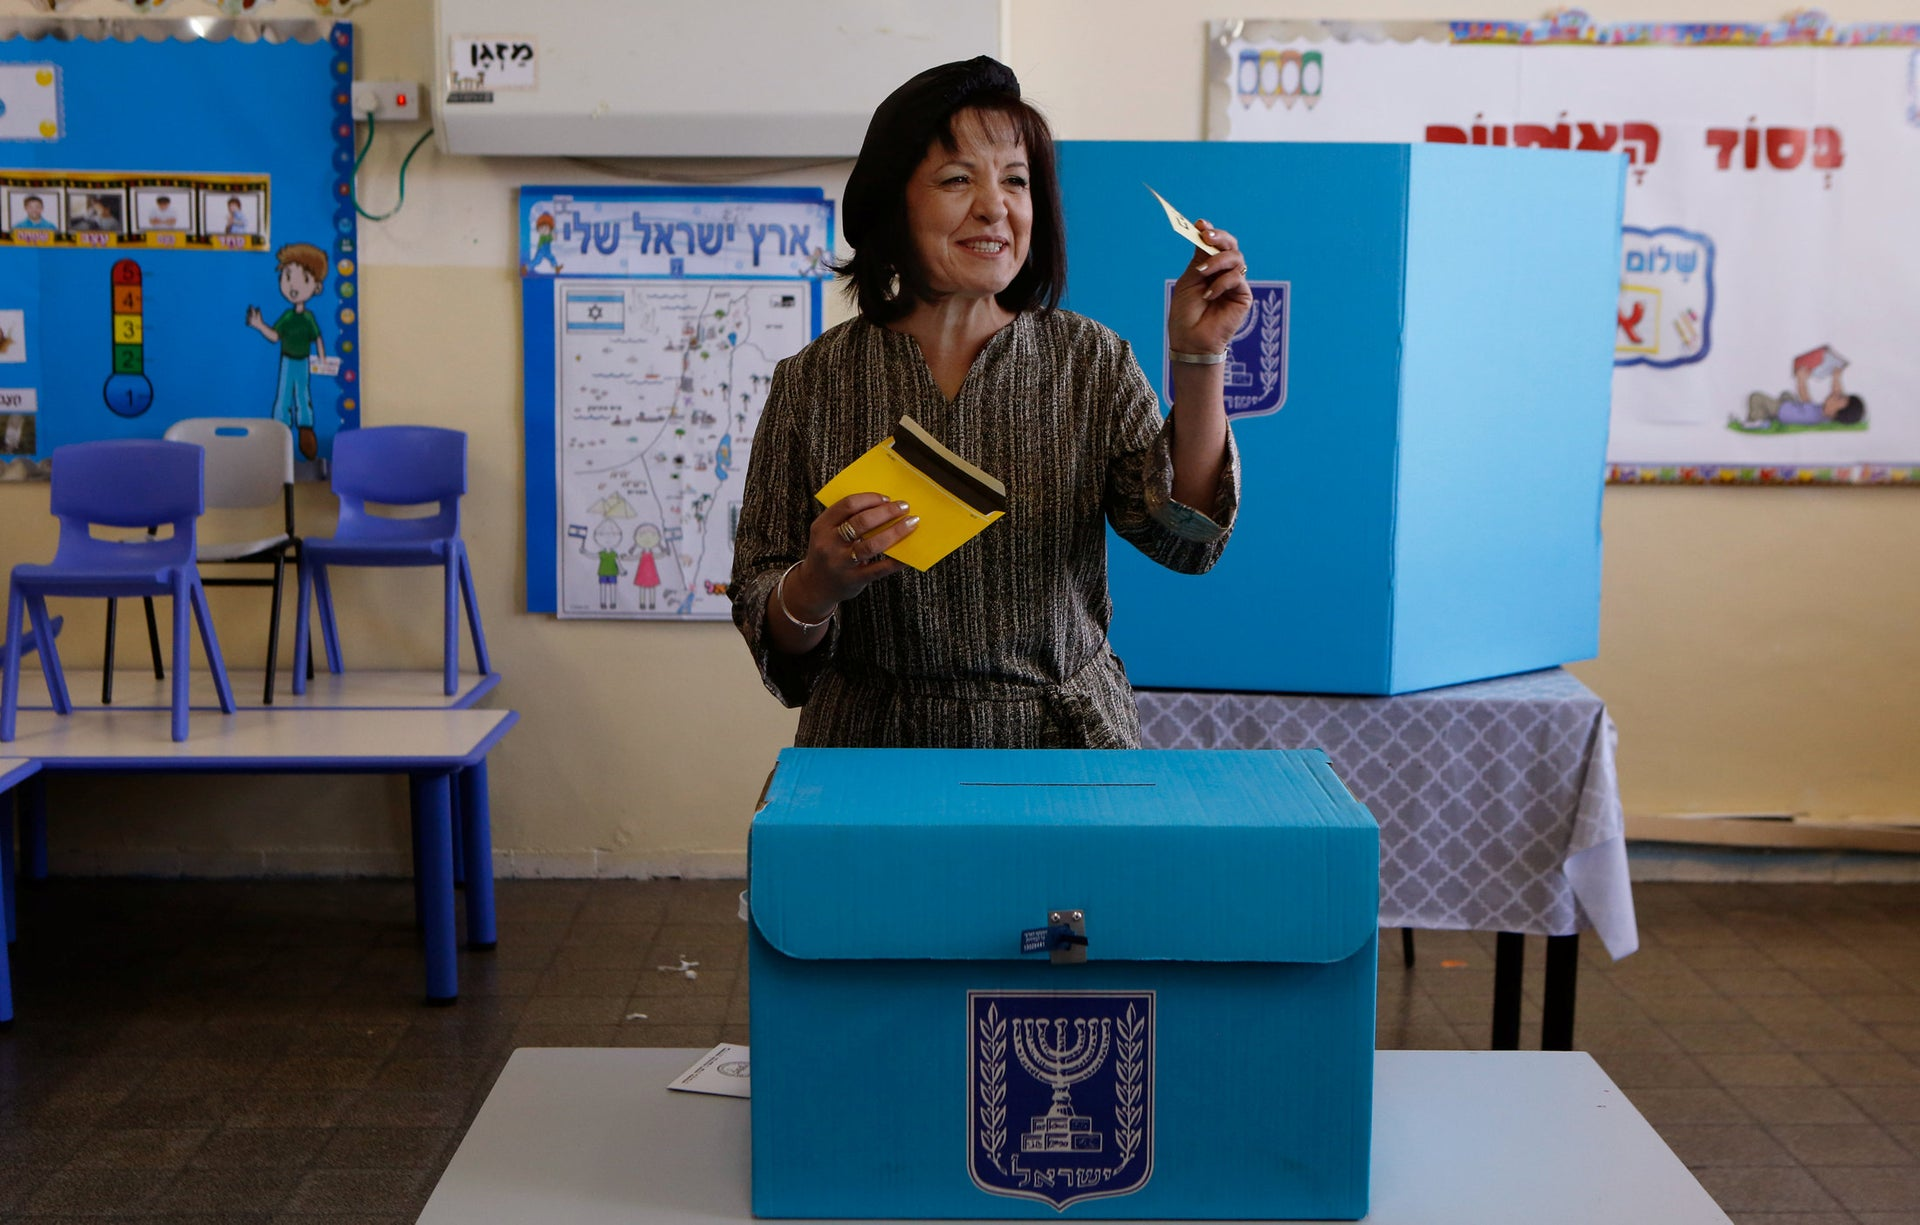 Beit Shemesh mayoral candidate Aliza Bloch casting her vote, October 30, 2018